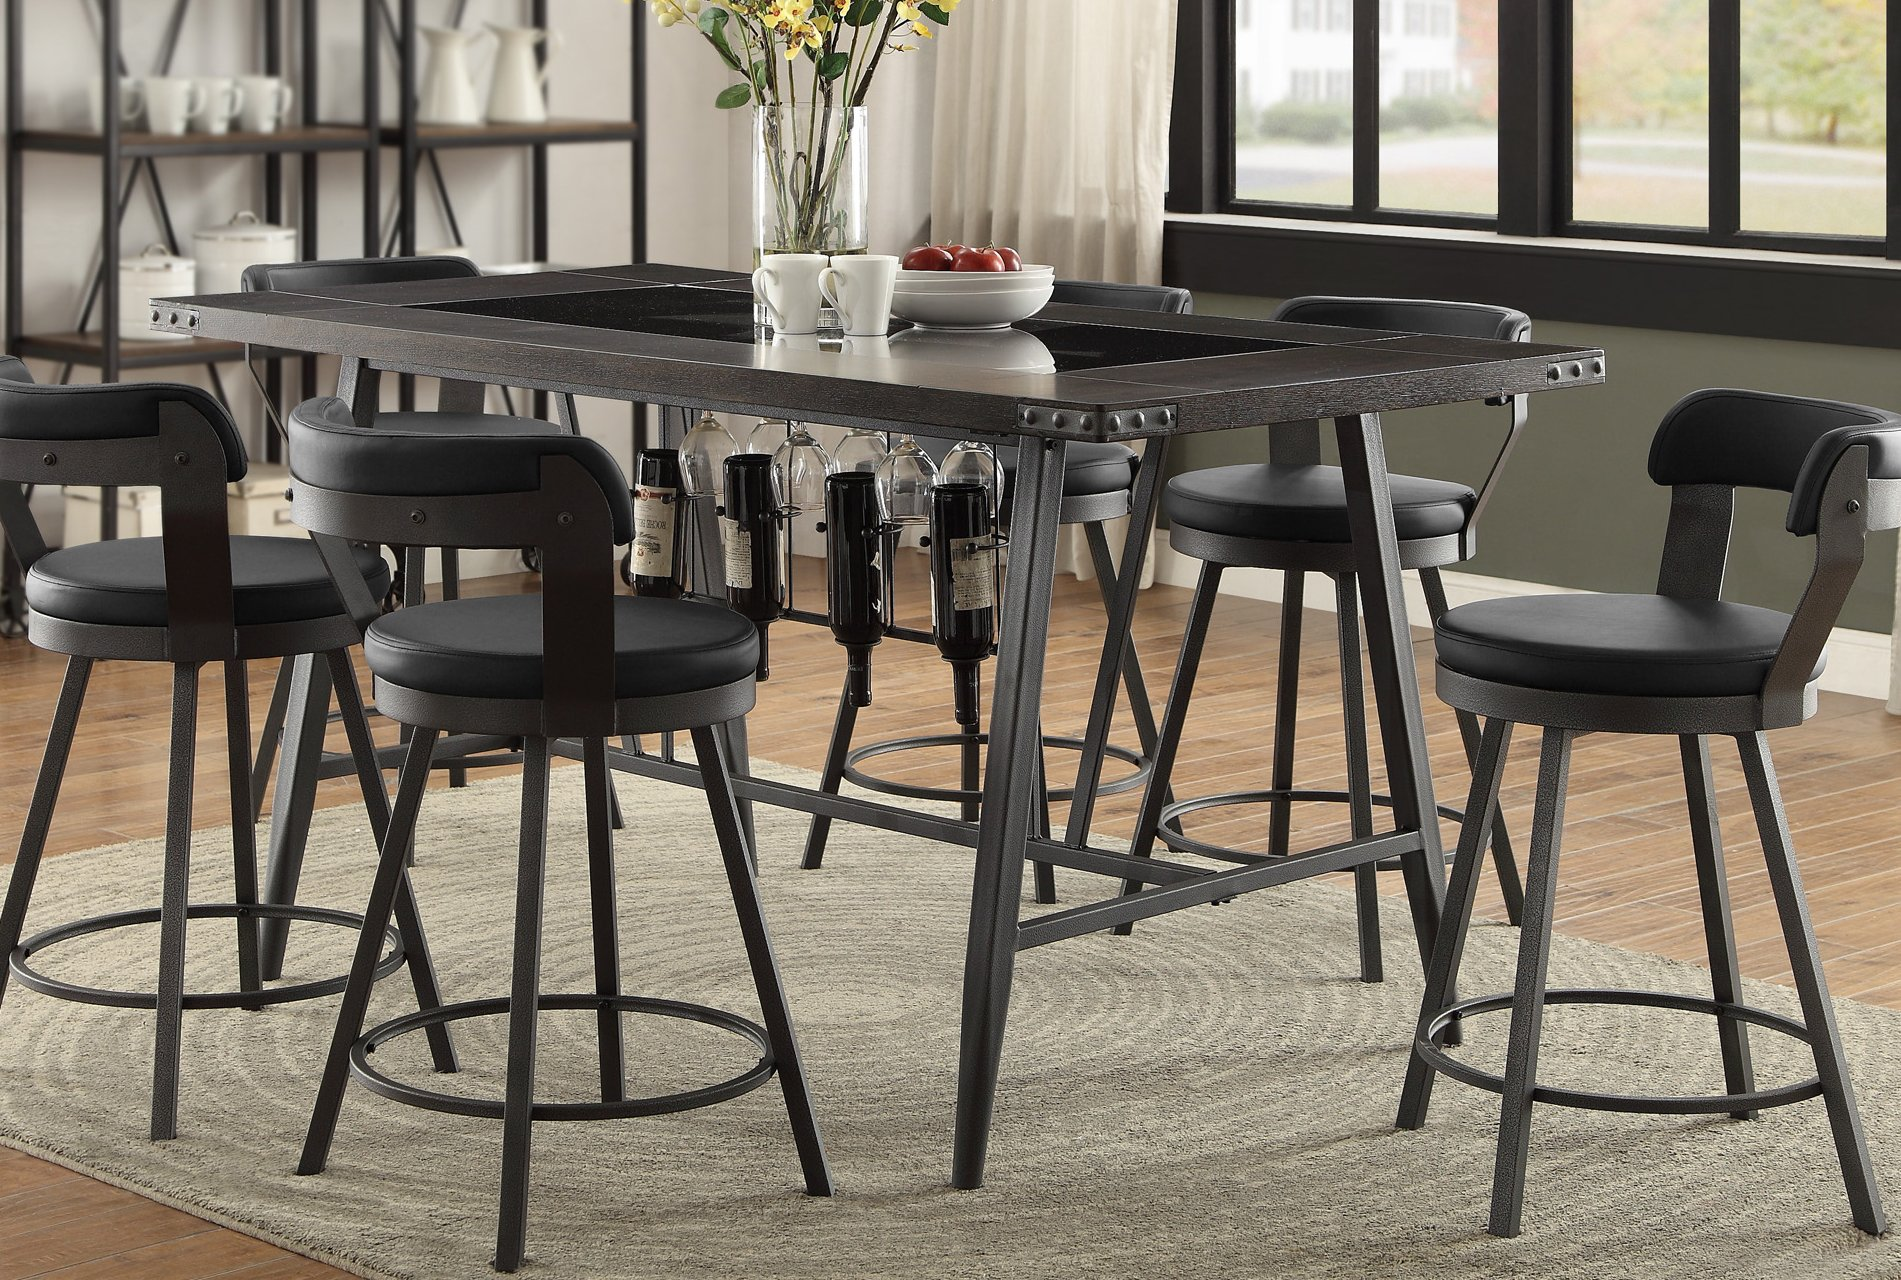 Metal, Wood and Glass Counter Height Dining Table - Appert